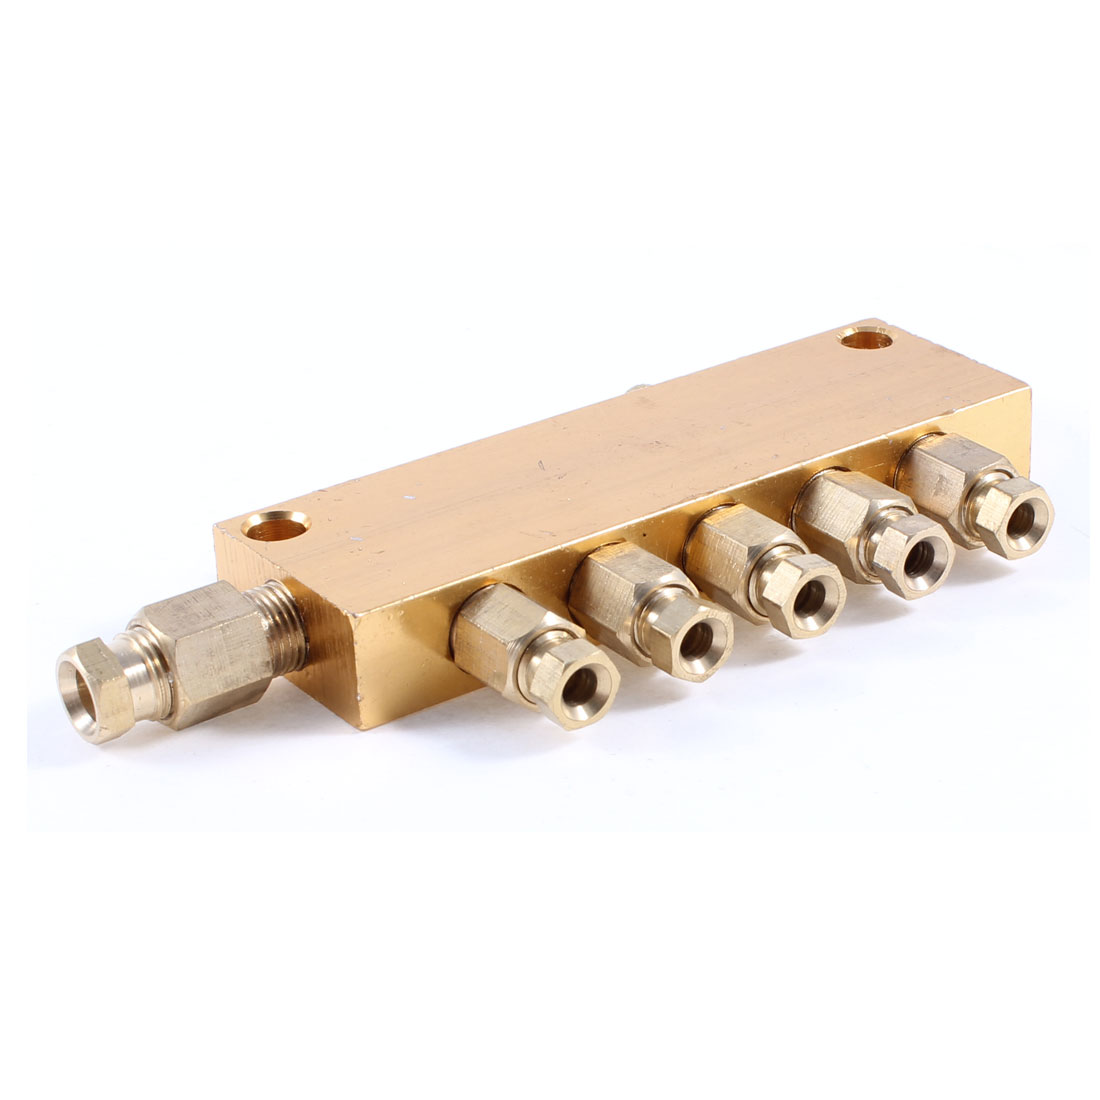 Air Pneumatic Brass Adjustable 5 Ways Oil Distributor Regulating Manifold Block